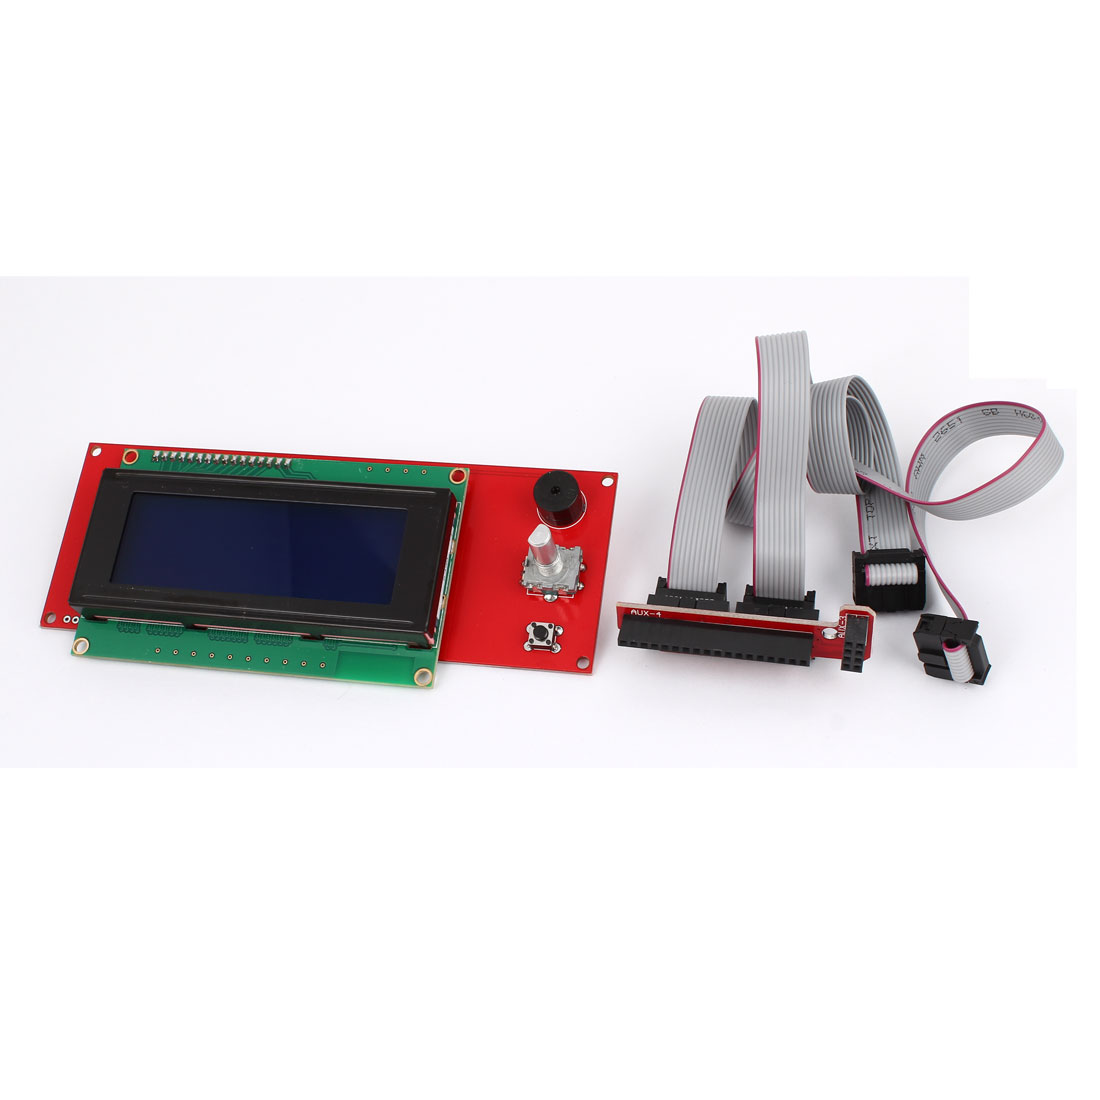 3D Printer Smart Controller Remps 1.4 2004LCD Control Board w FC-10P Flat Cable